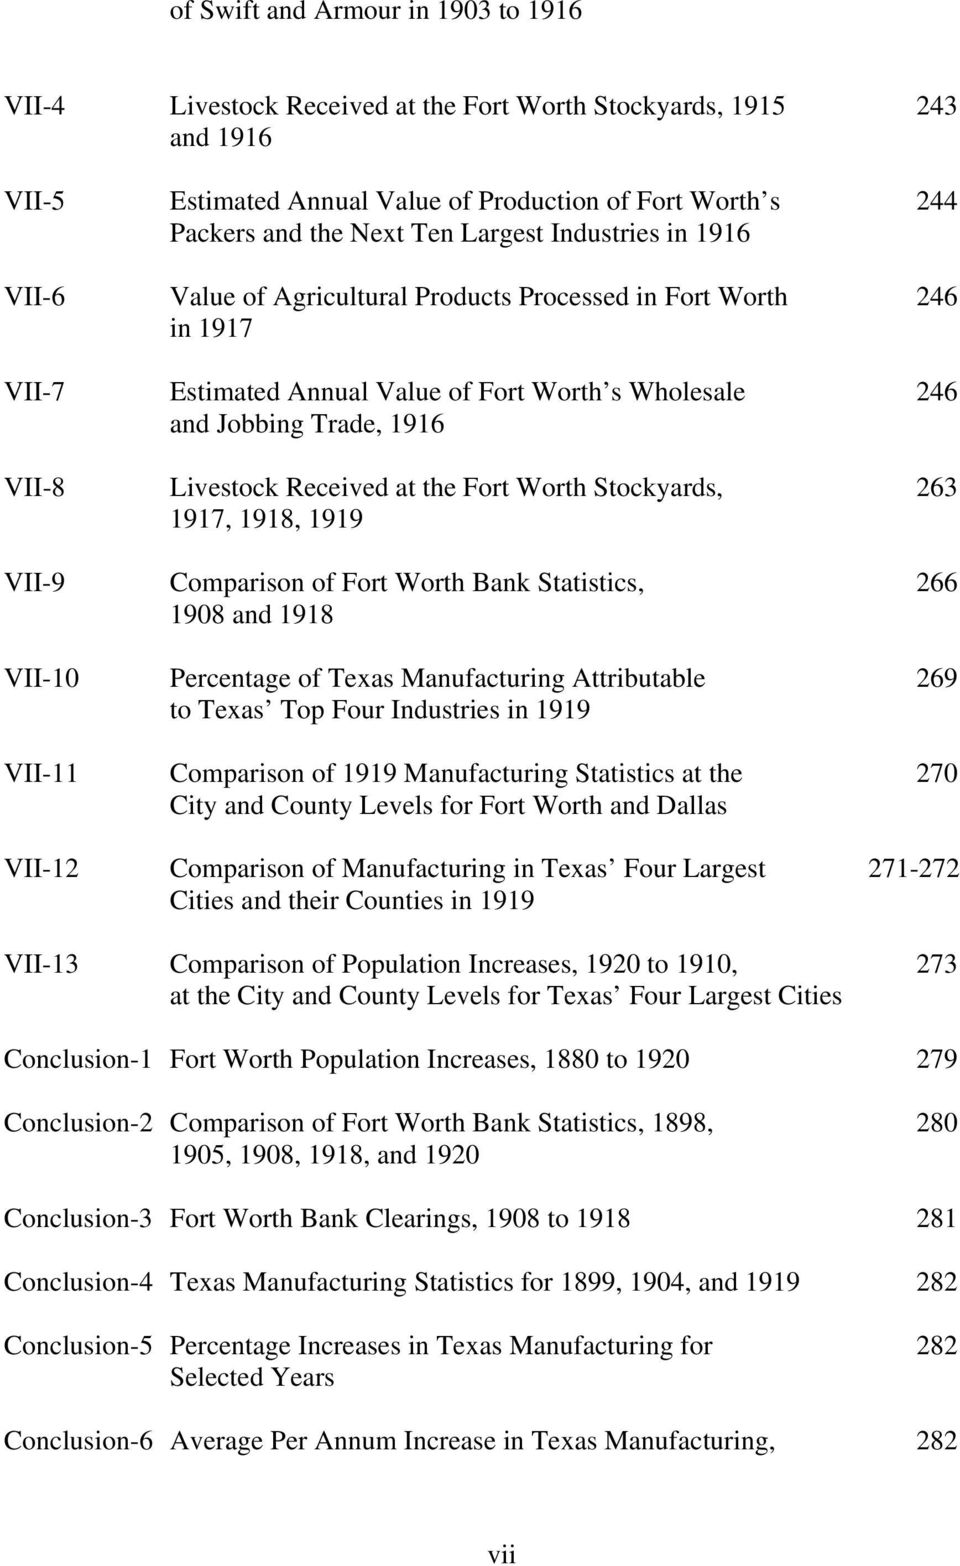 Received at the Fort Worth Stockyards, 263 1917, 1918, 1919 VII-9 Comparison of Fort Worth Bank Statistics, 266 1908 and 1918 VII-10 Percentage of Texas Manufacturing Attributable 269 to Texas Top